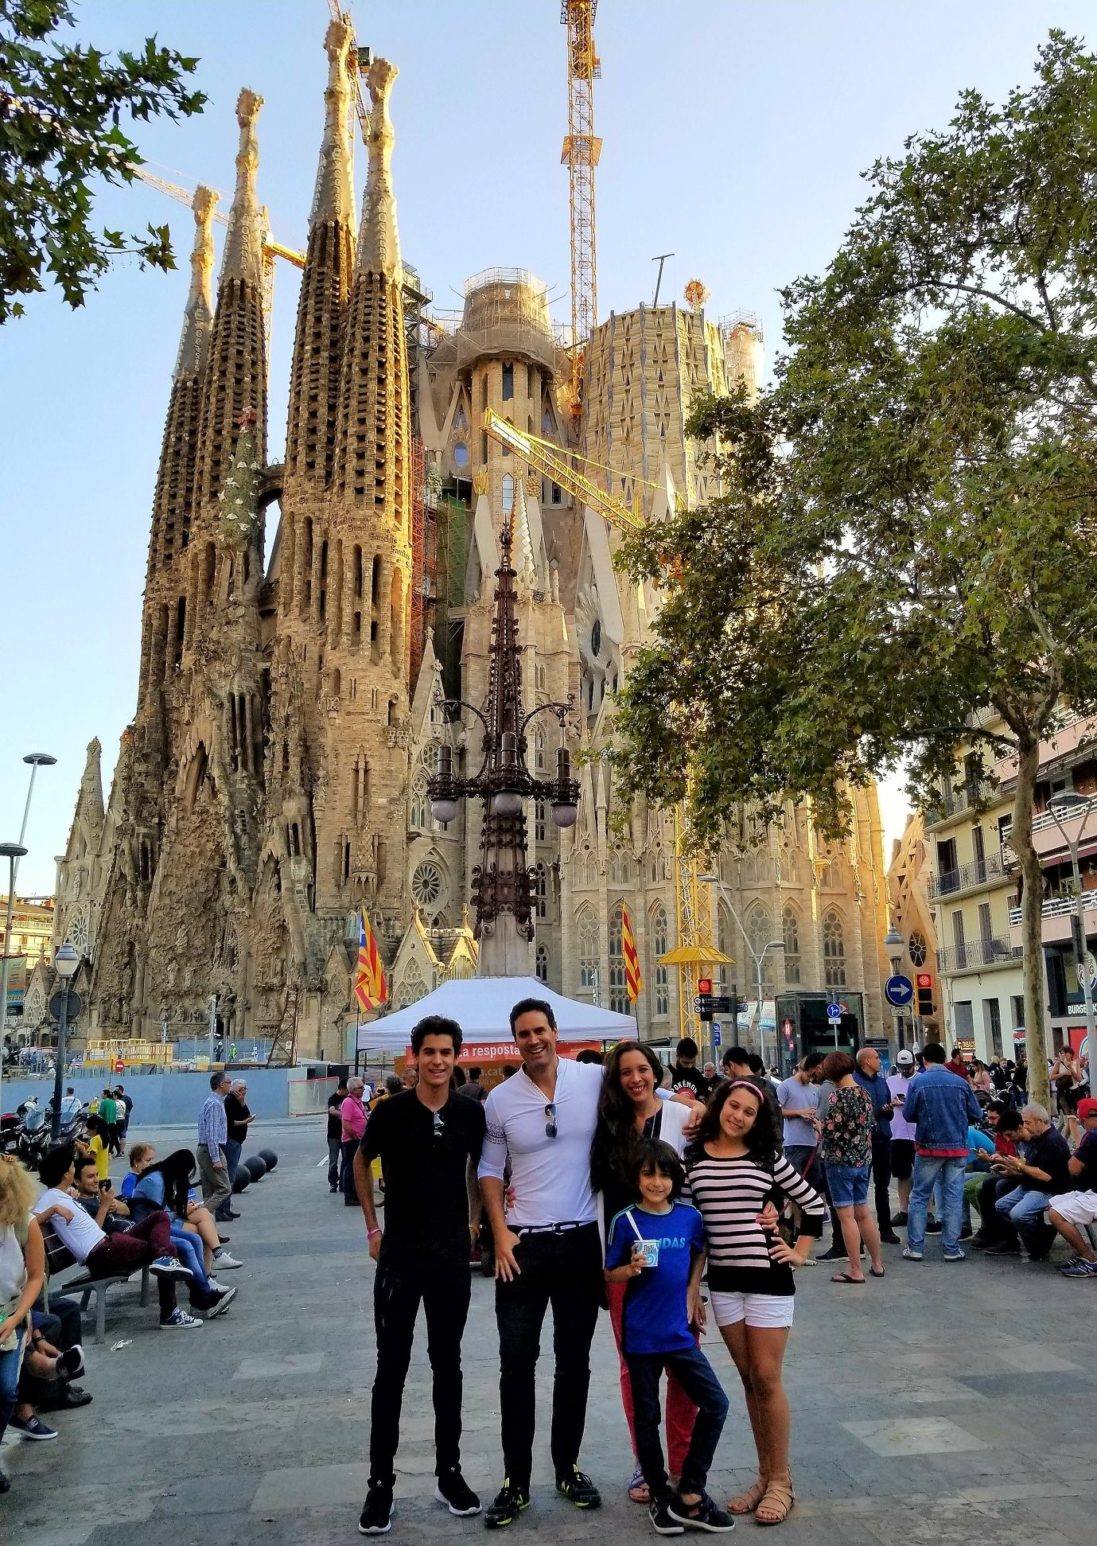 Faculty Travel Abroad Program Coordinator and Group Leader, Mr. Luis Benavent,at La Sagrada Familia Cathedral in Barcelona, Spain